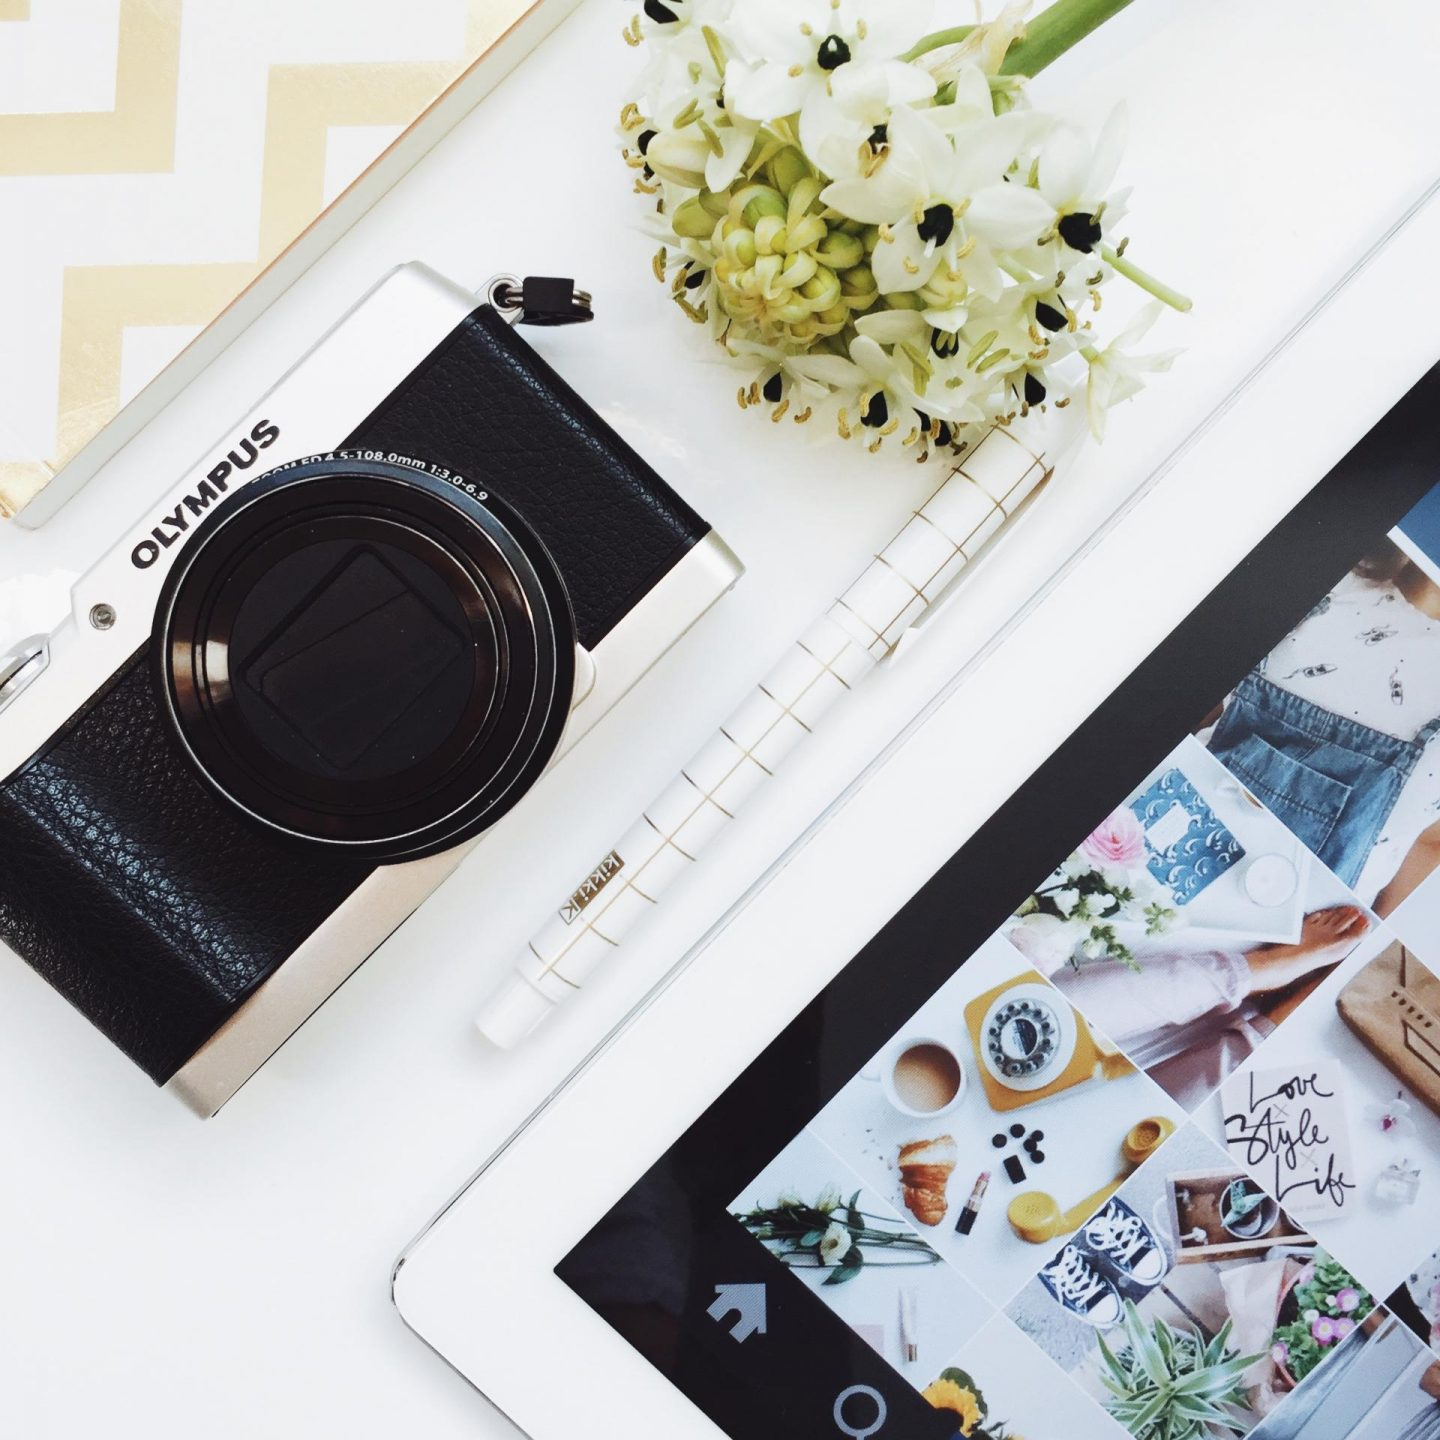 Take better photos for Instagram with your iPhone in 5 simple steps